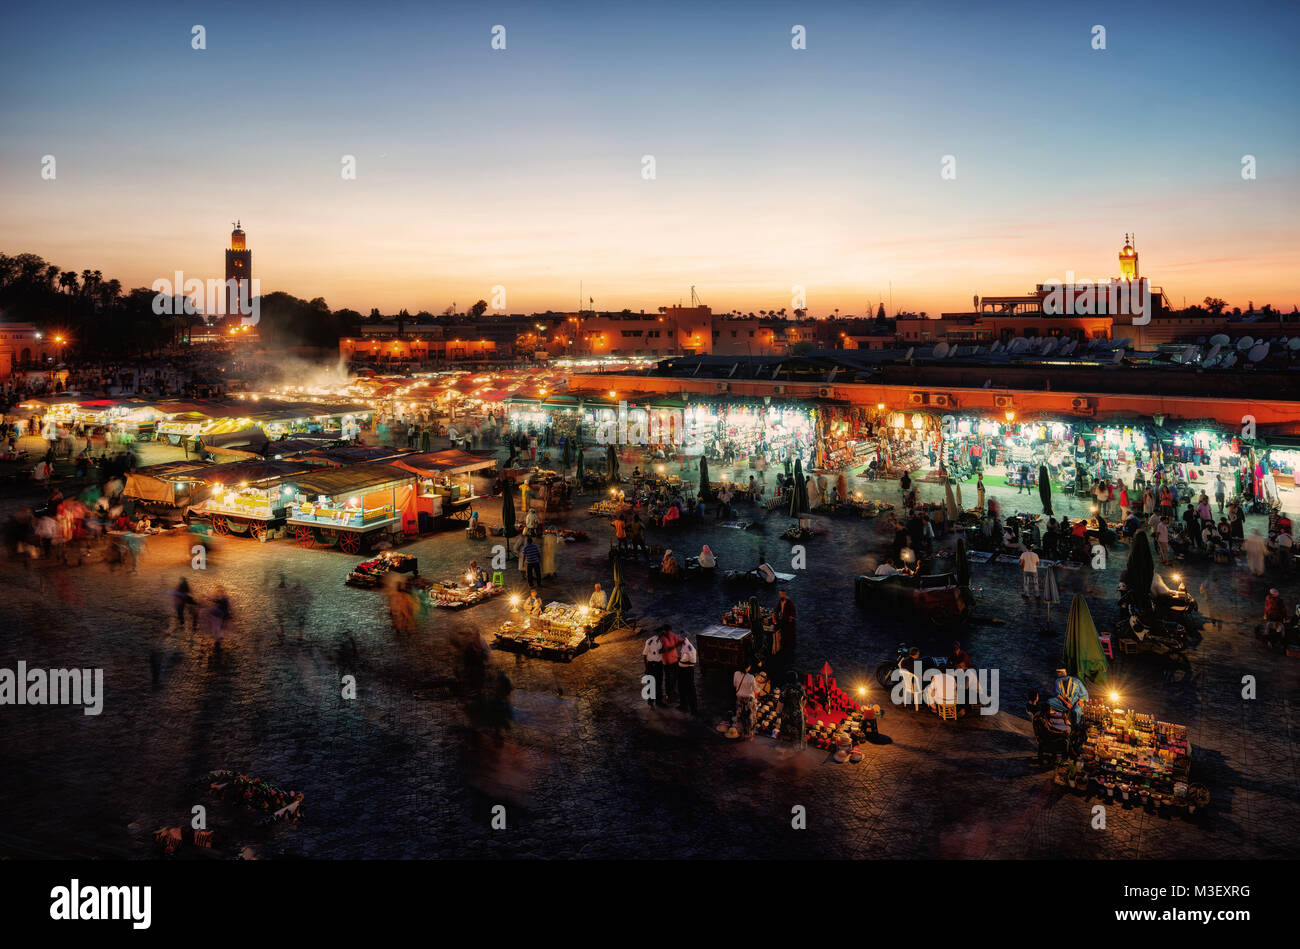 Marrakesh Market Square at Sunset taken in 2015 Stock Photo